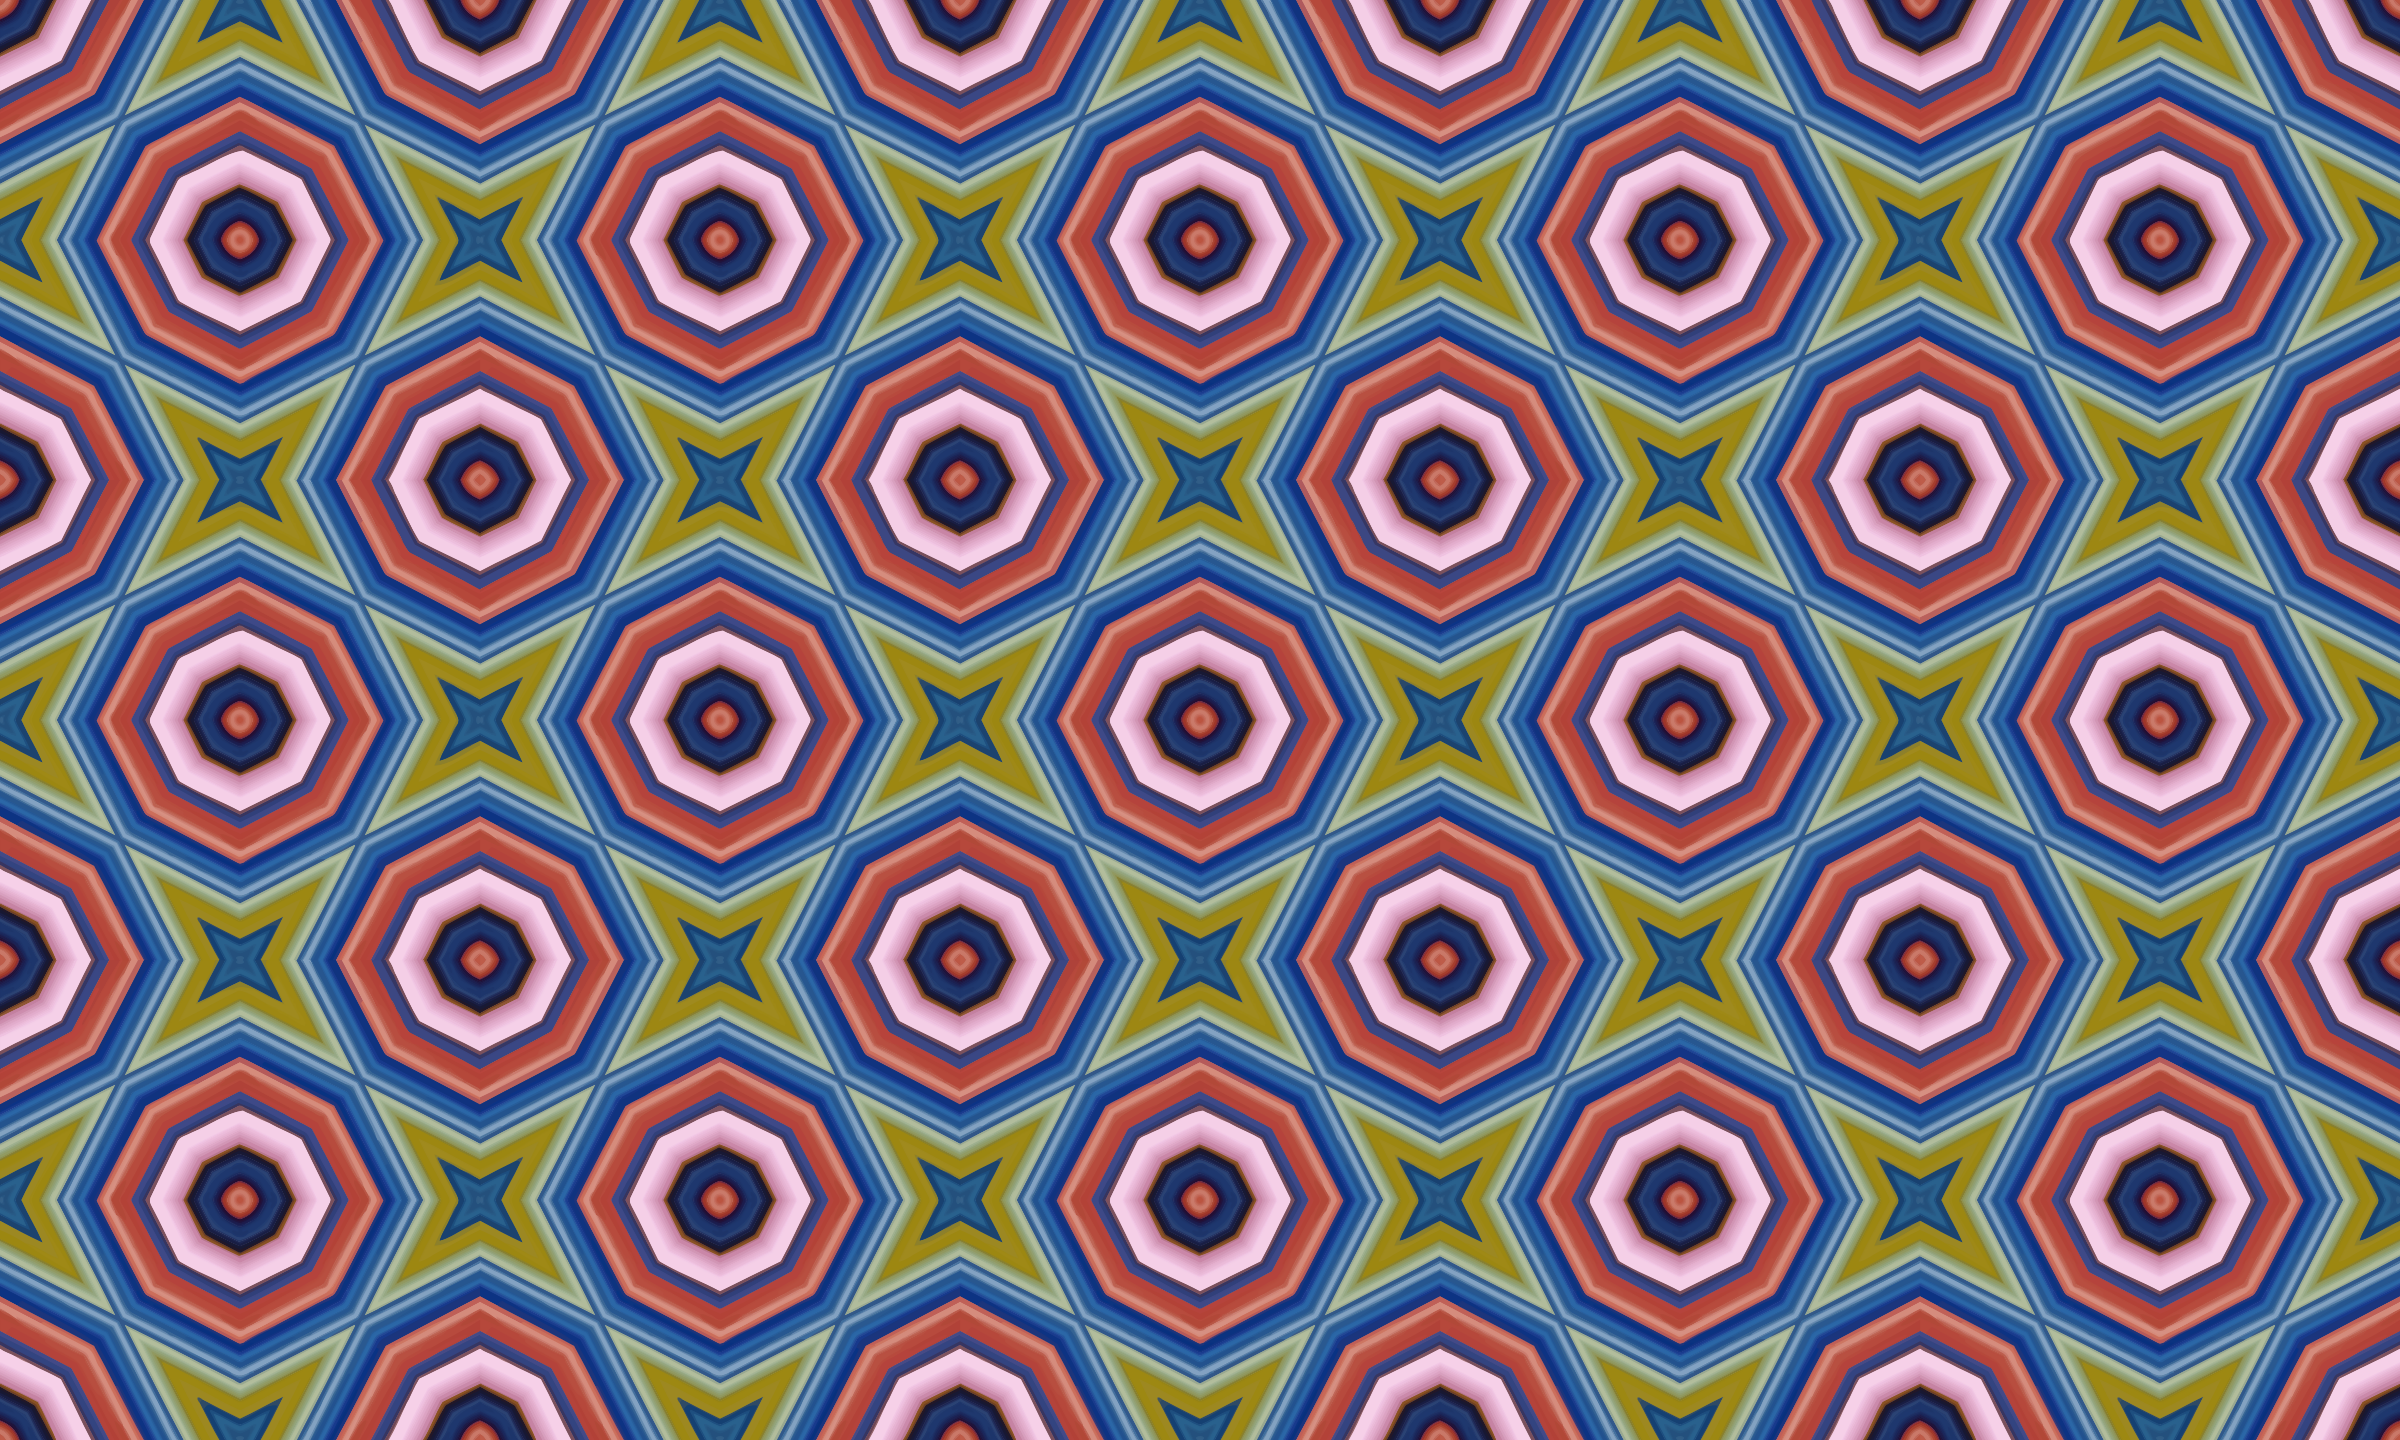 Background pattern 229 by Firkin